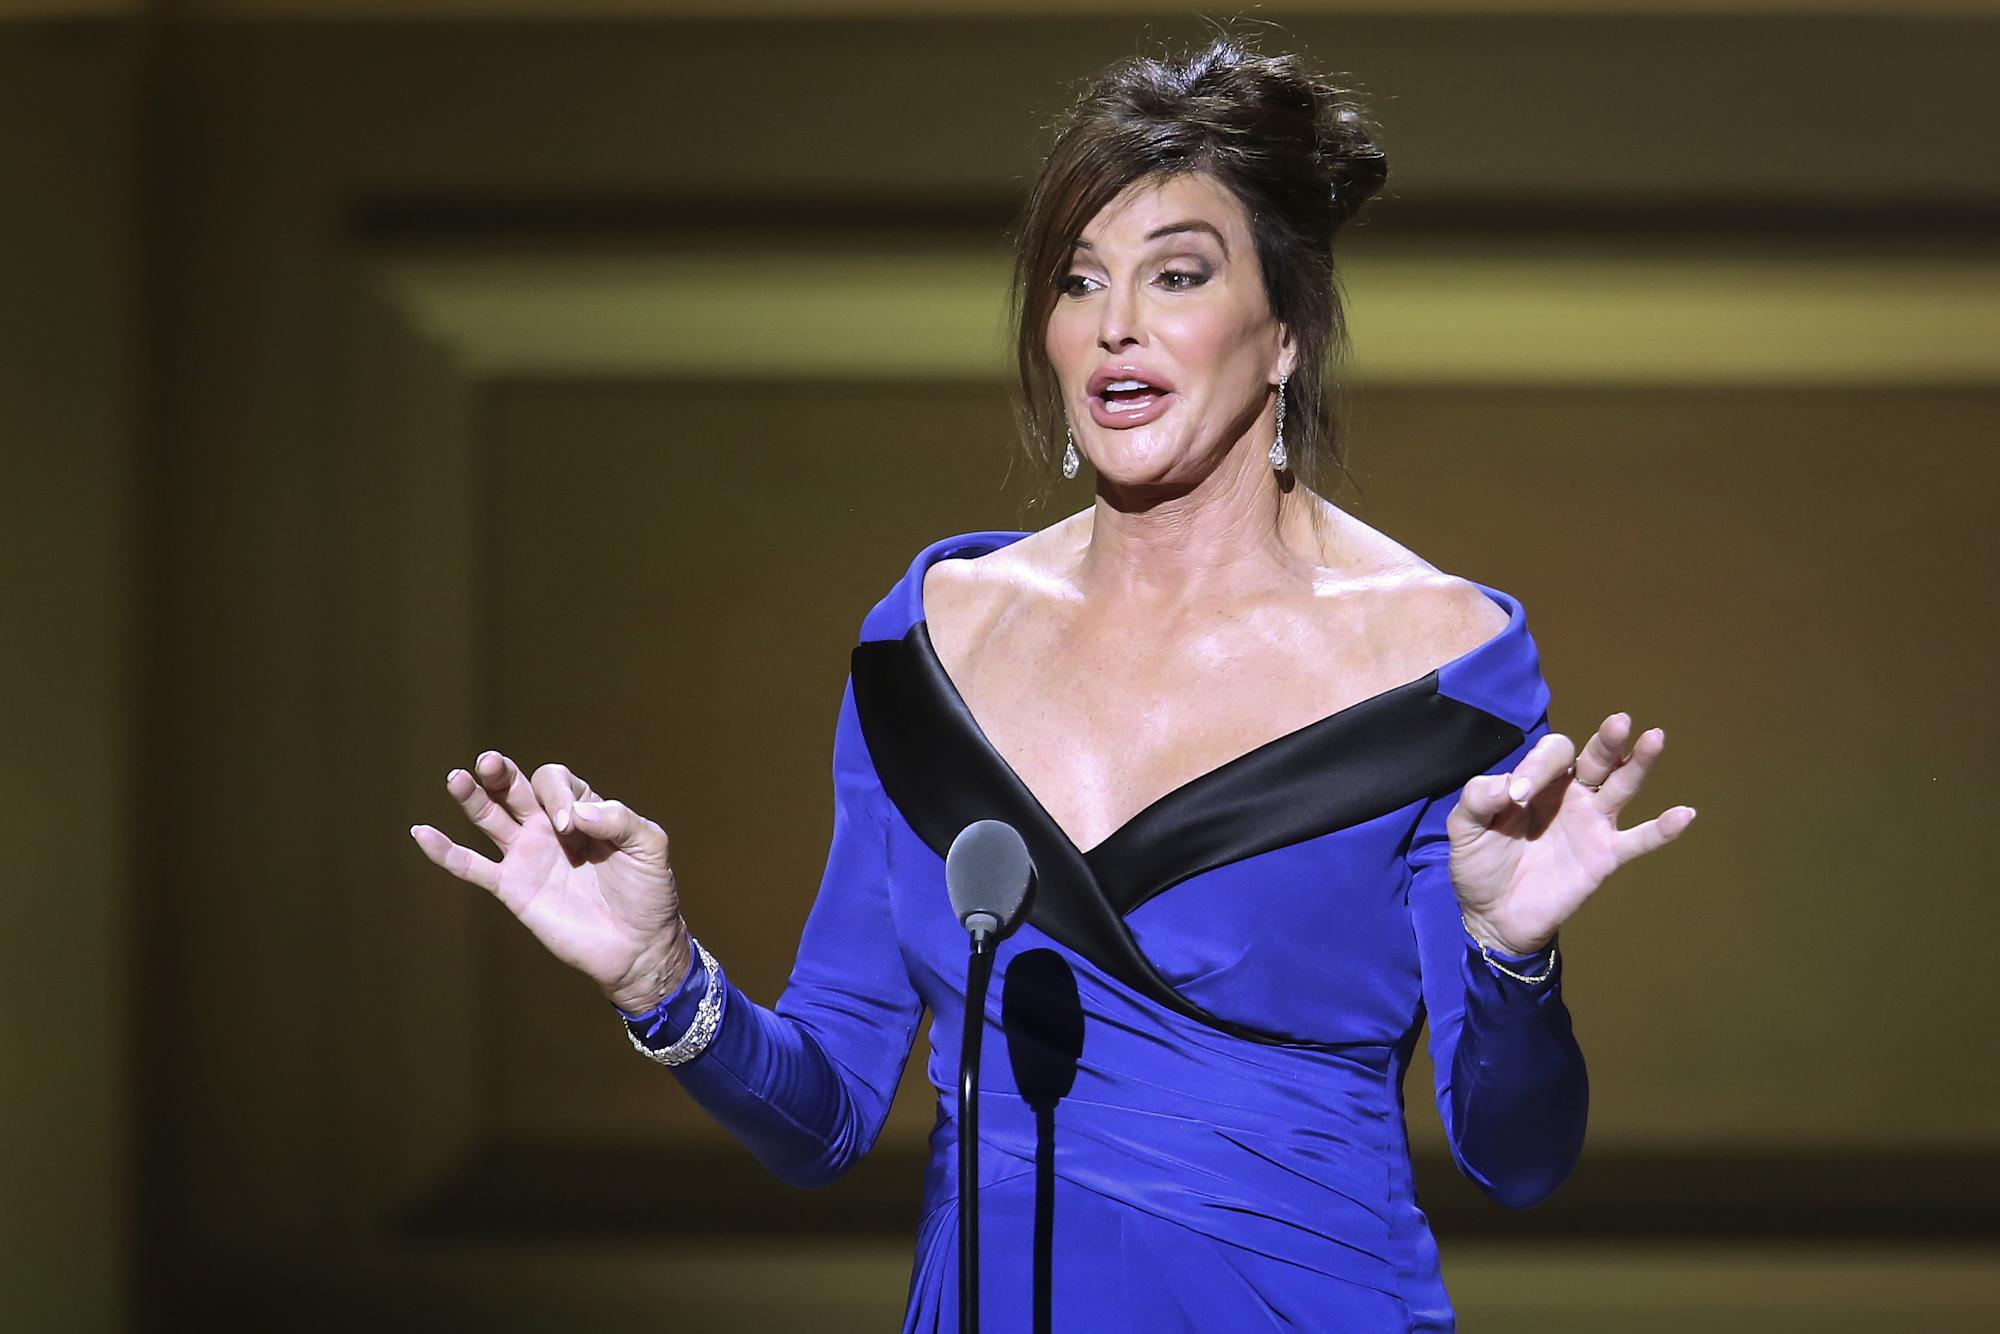 Caitlyn Jenner calls herself a 'compassionate disruptor' in first campaign ad for governor